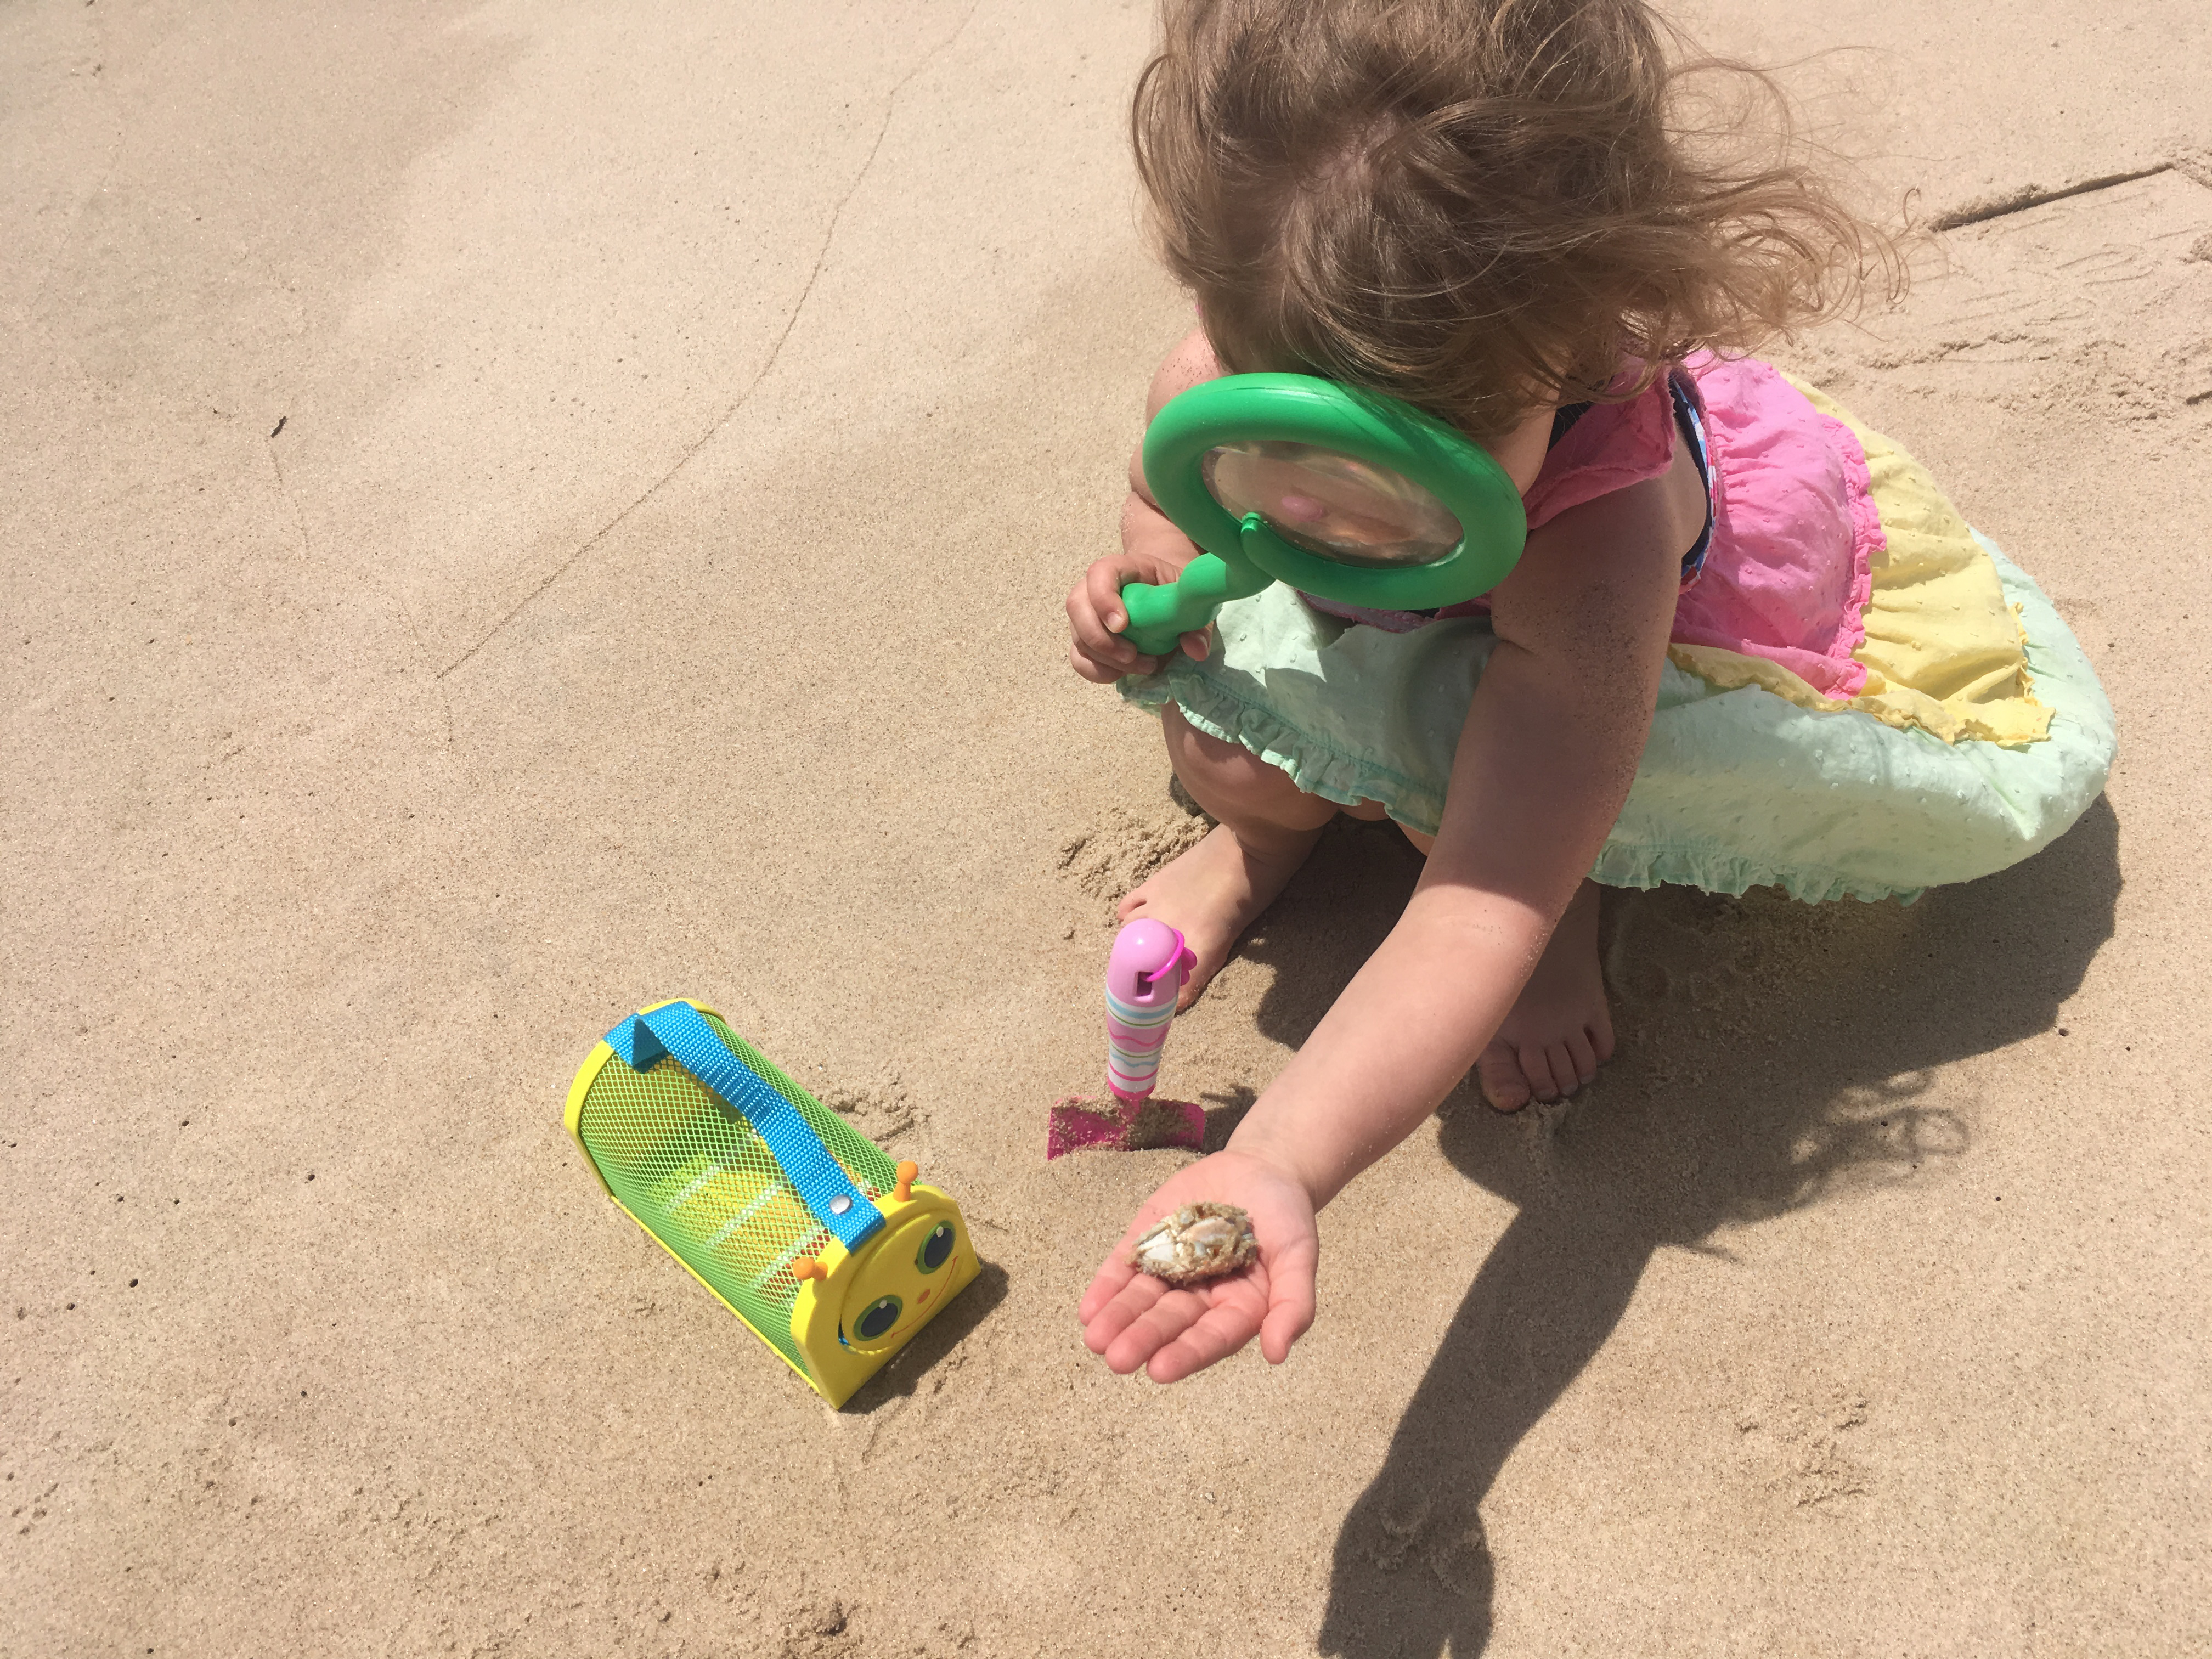 Explore beach critters with a magnifying glass to see their beauty up close!